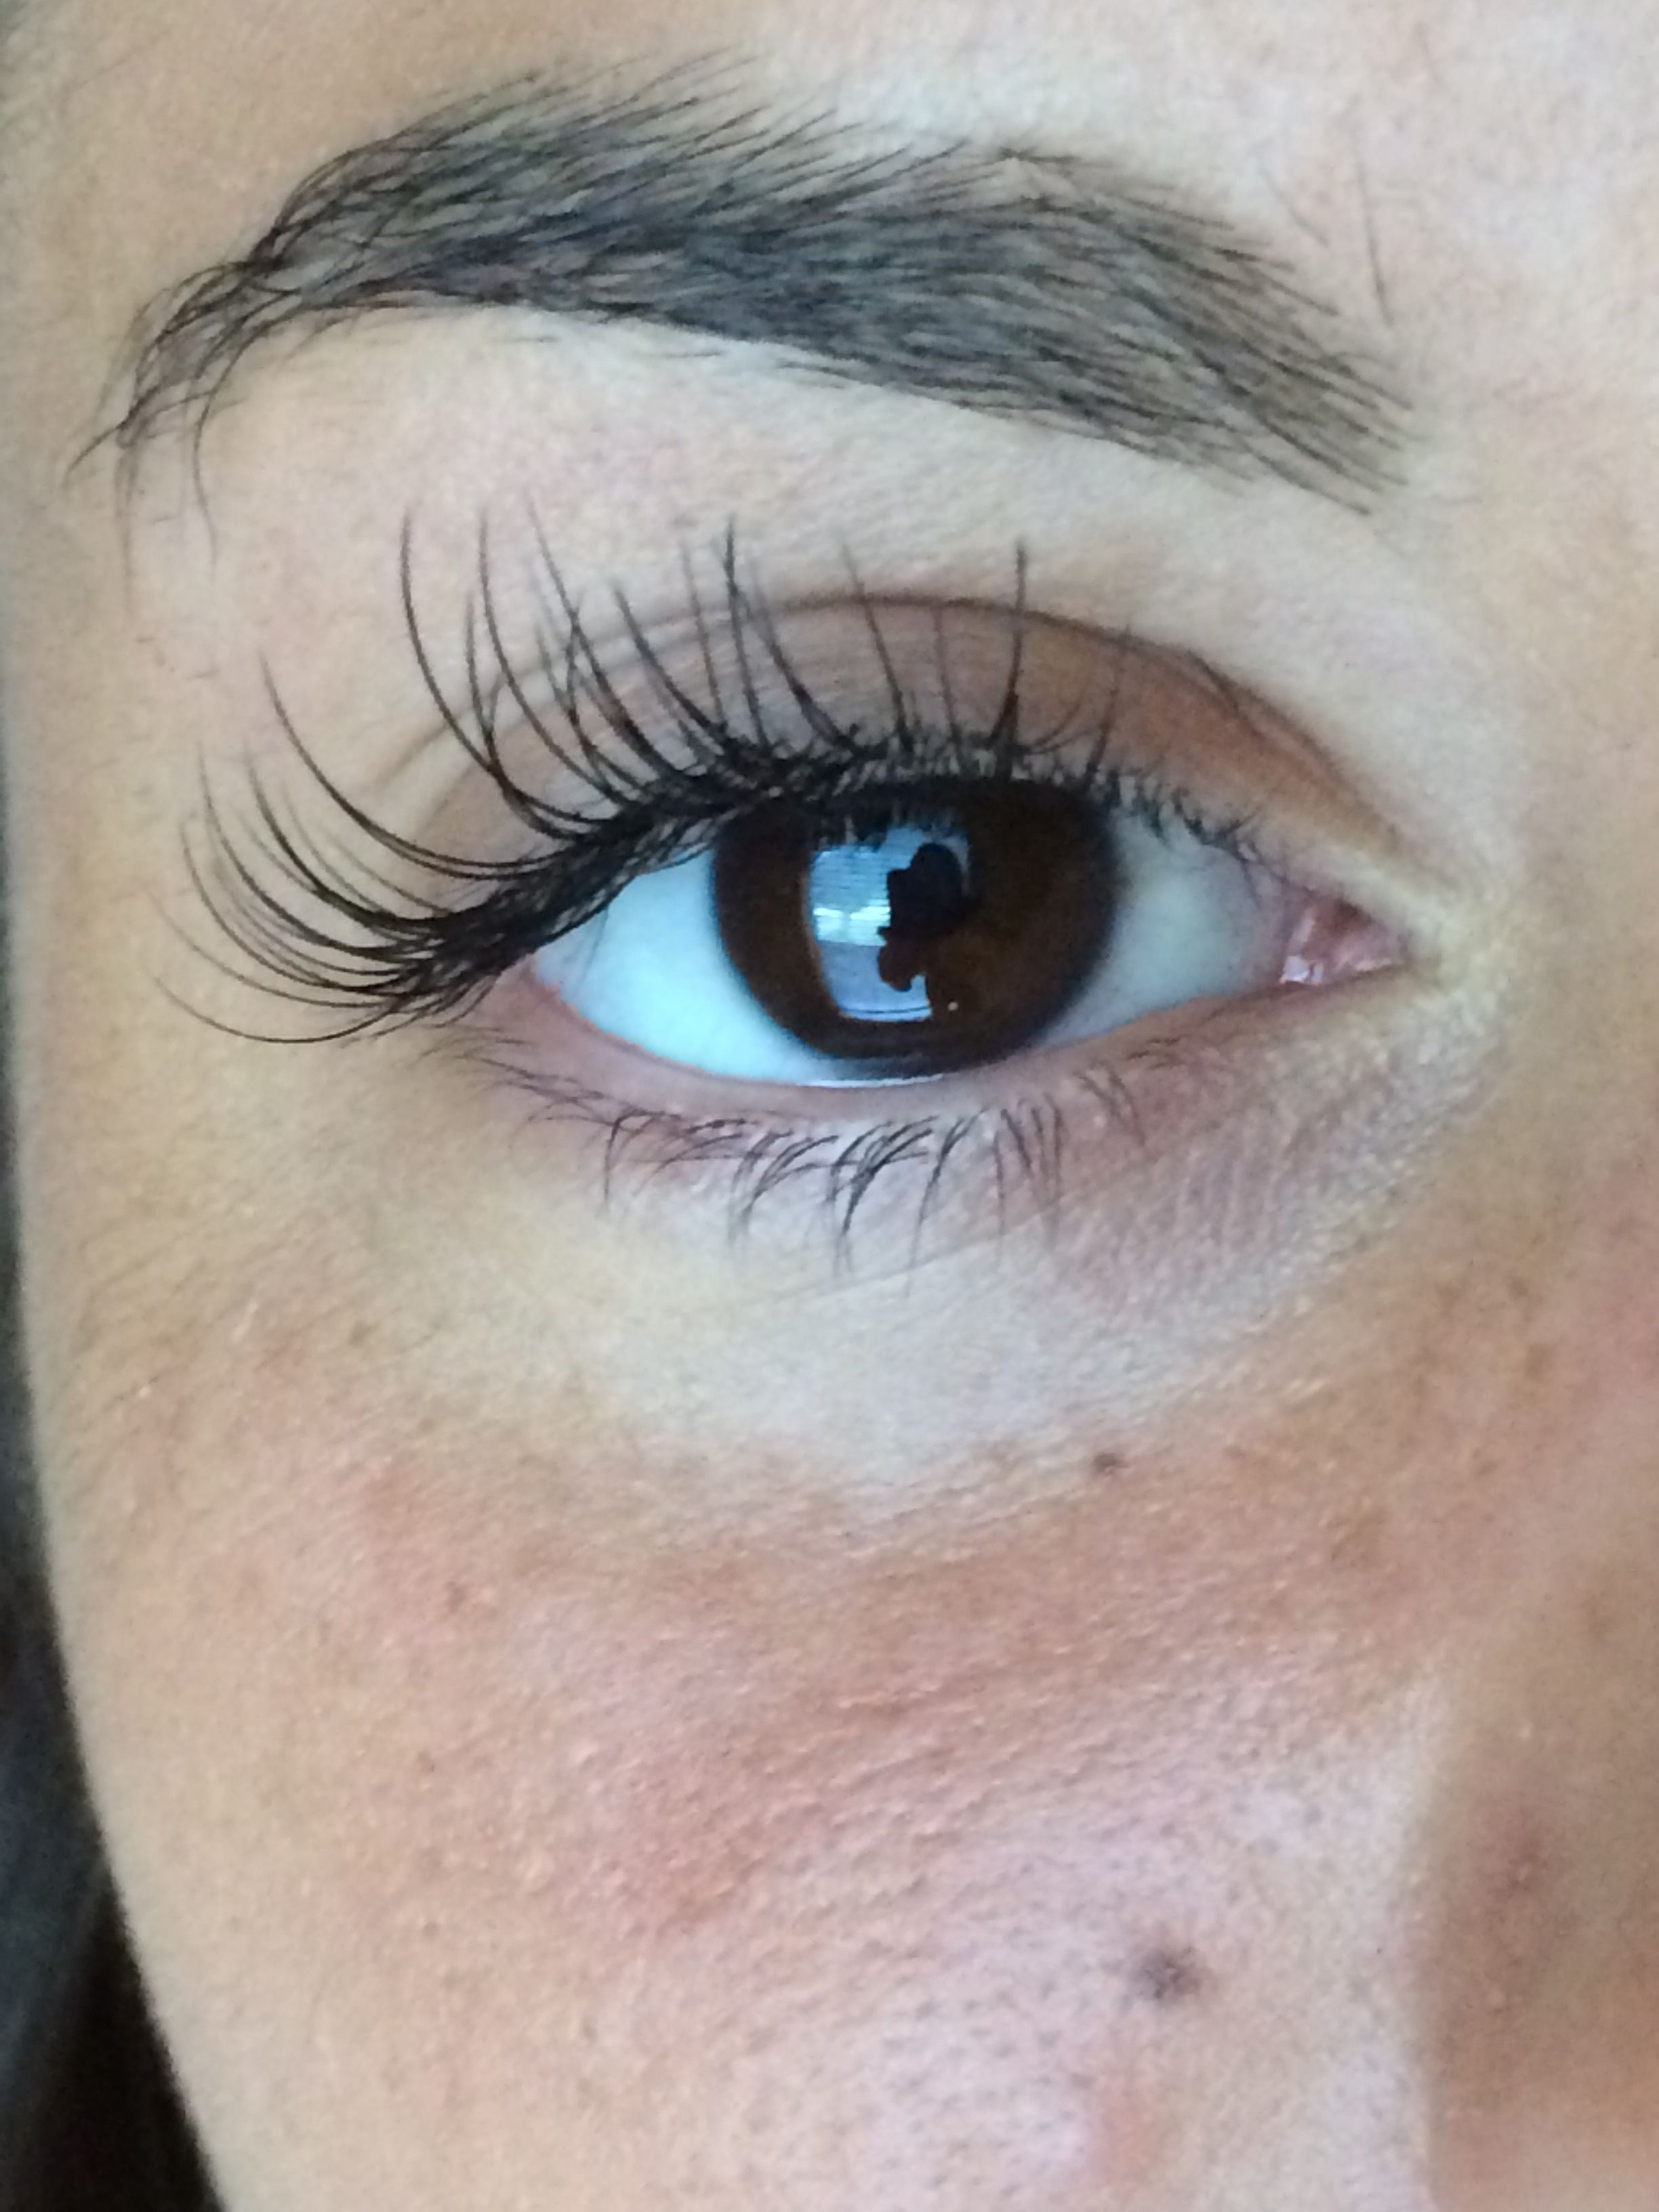 Eyelash extensions image by fearless beauty on eyelash